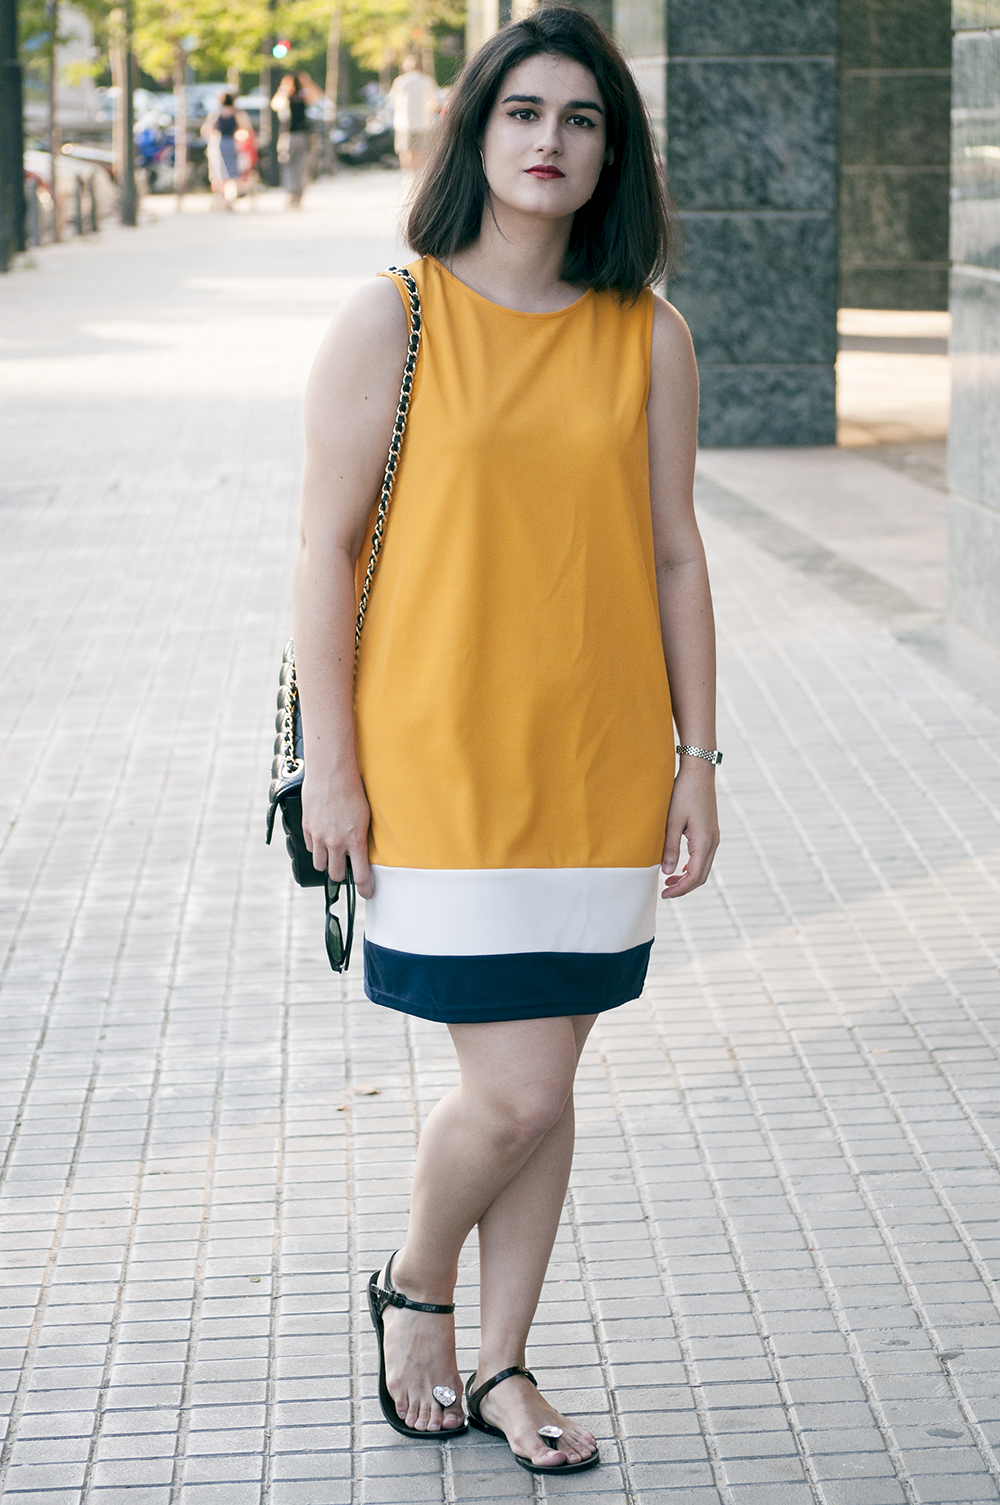 ootd somethingfashion valencia spain bloggers influencers shein collaboration dresses summer lookdujour_0032 copia